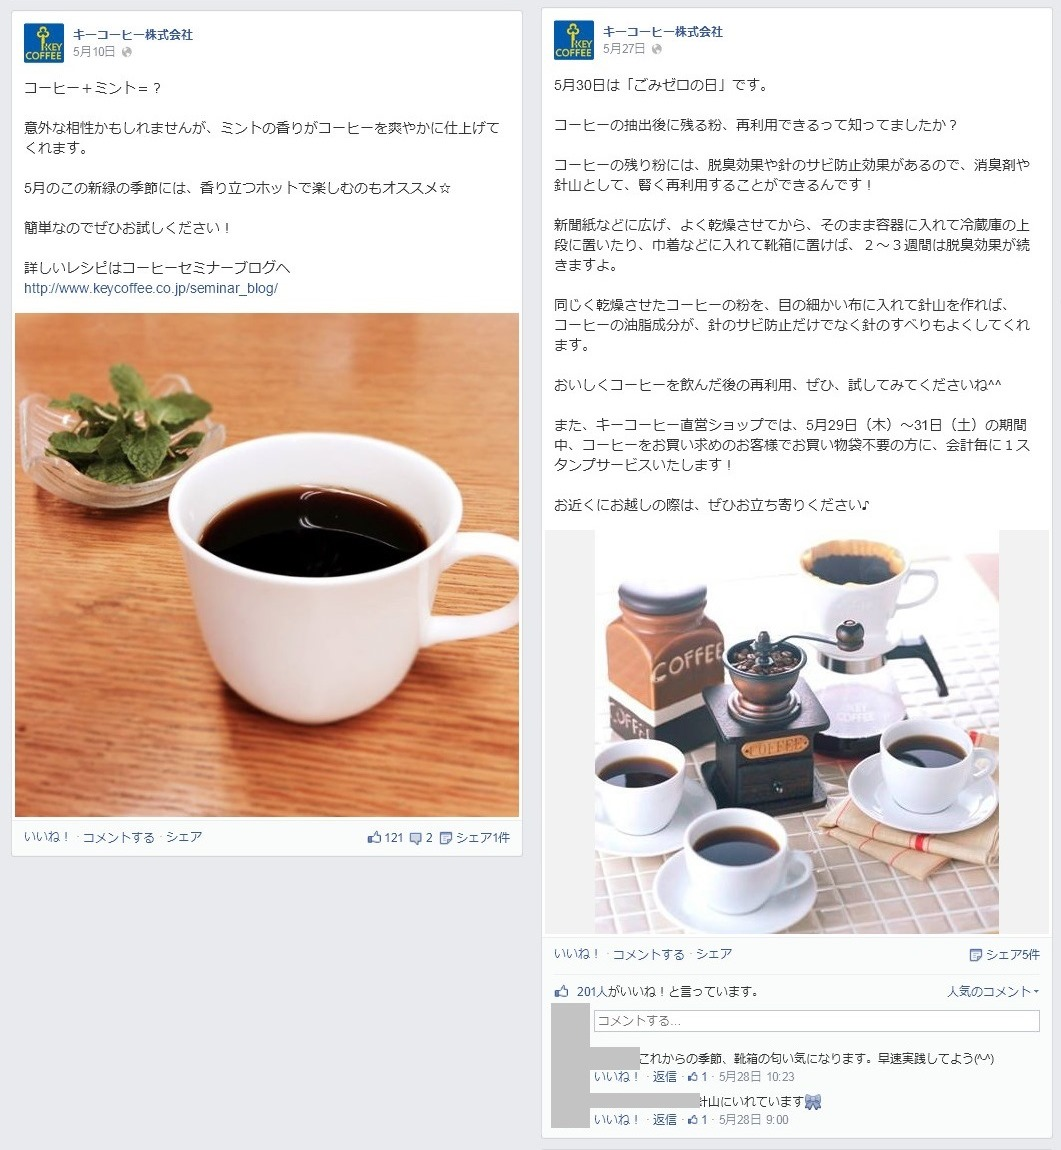 Facebook事例_キーコーヒー株式会社_意外な情報